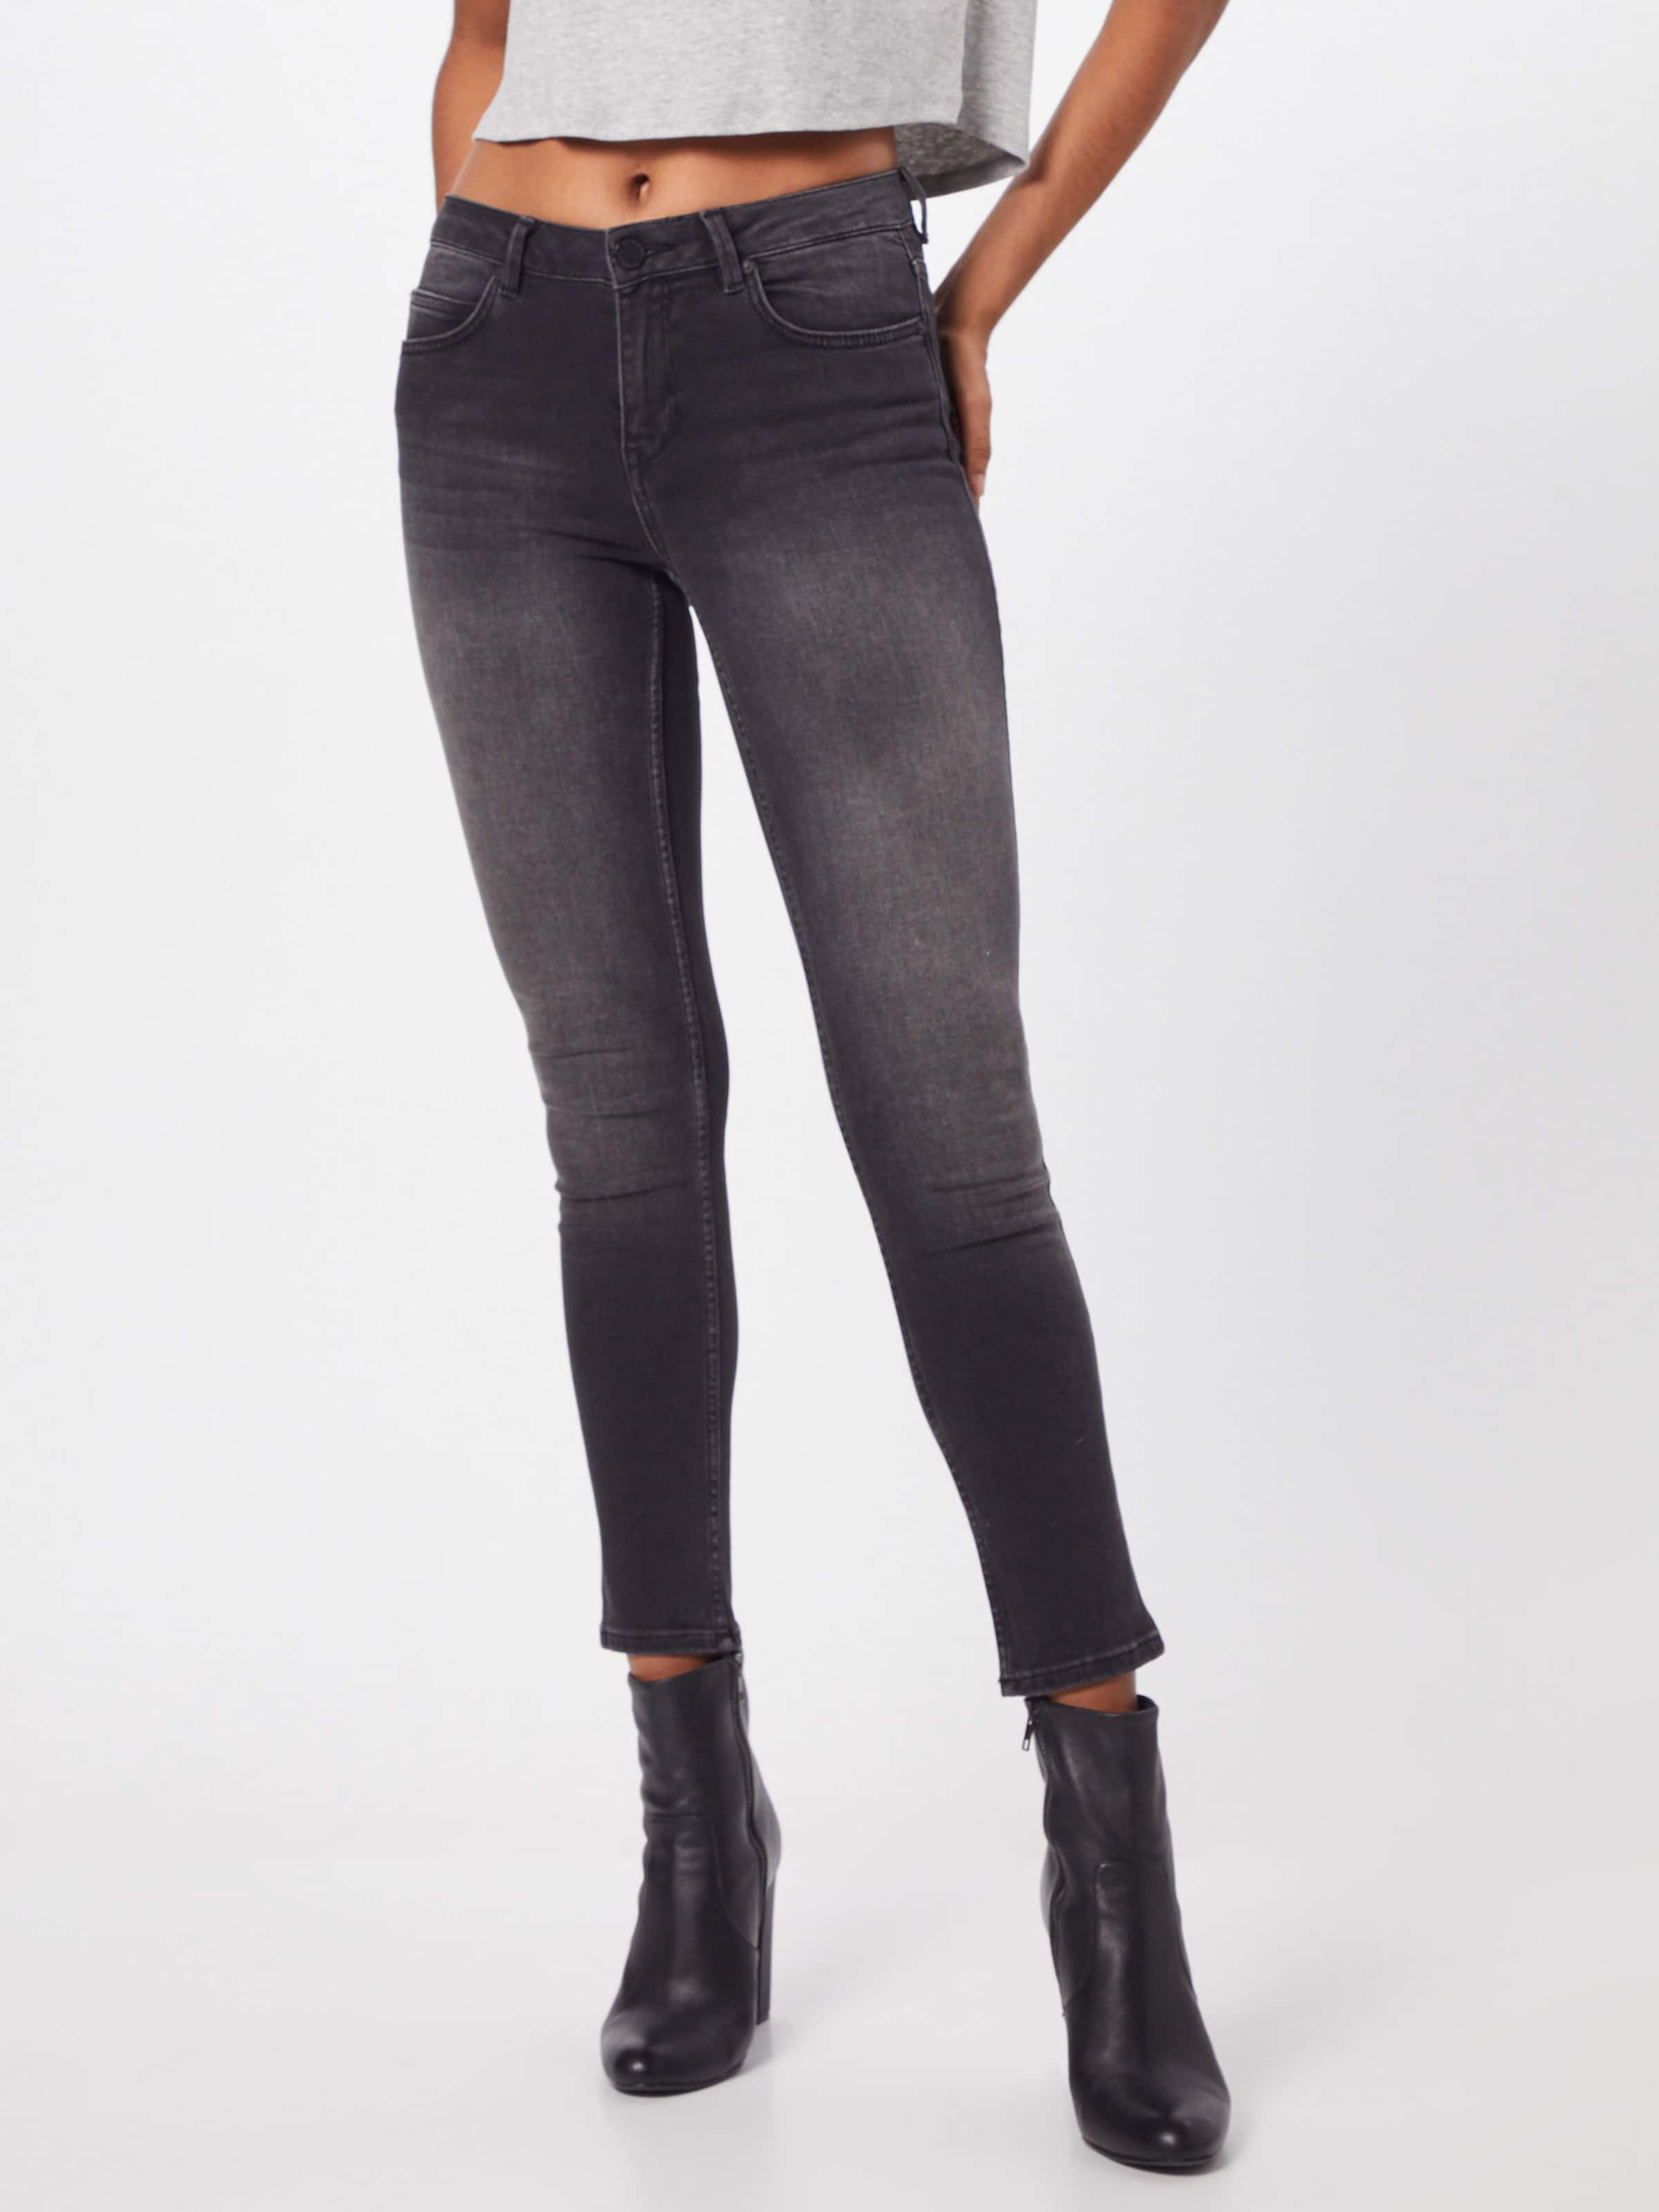 In Day Racer' 2nd Denim Black Jeans Cropped 'sally PukXiZ